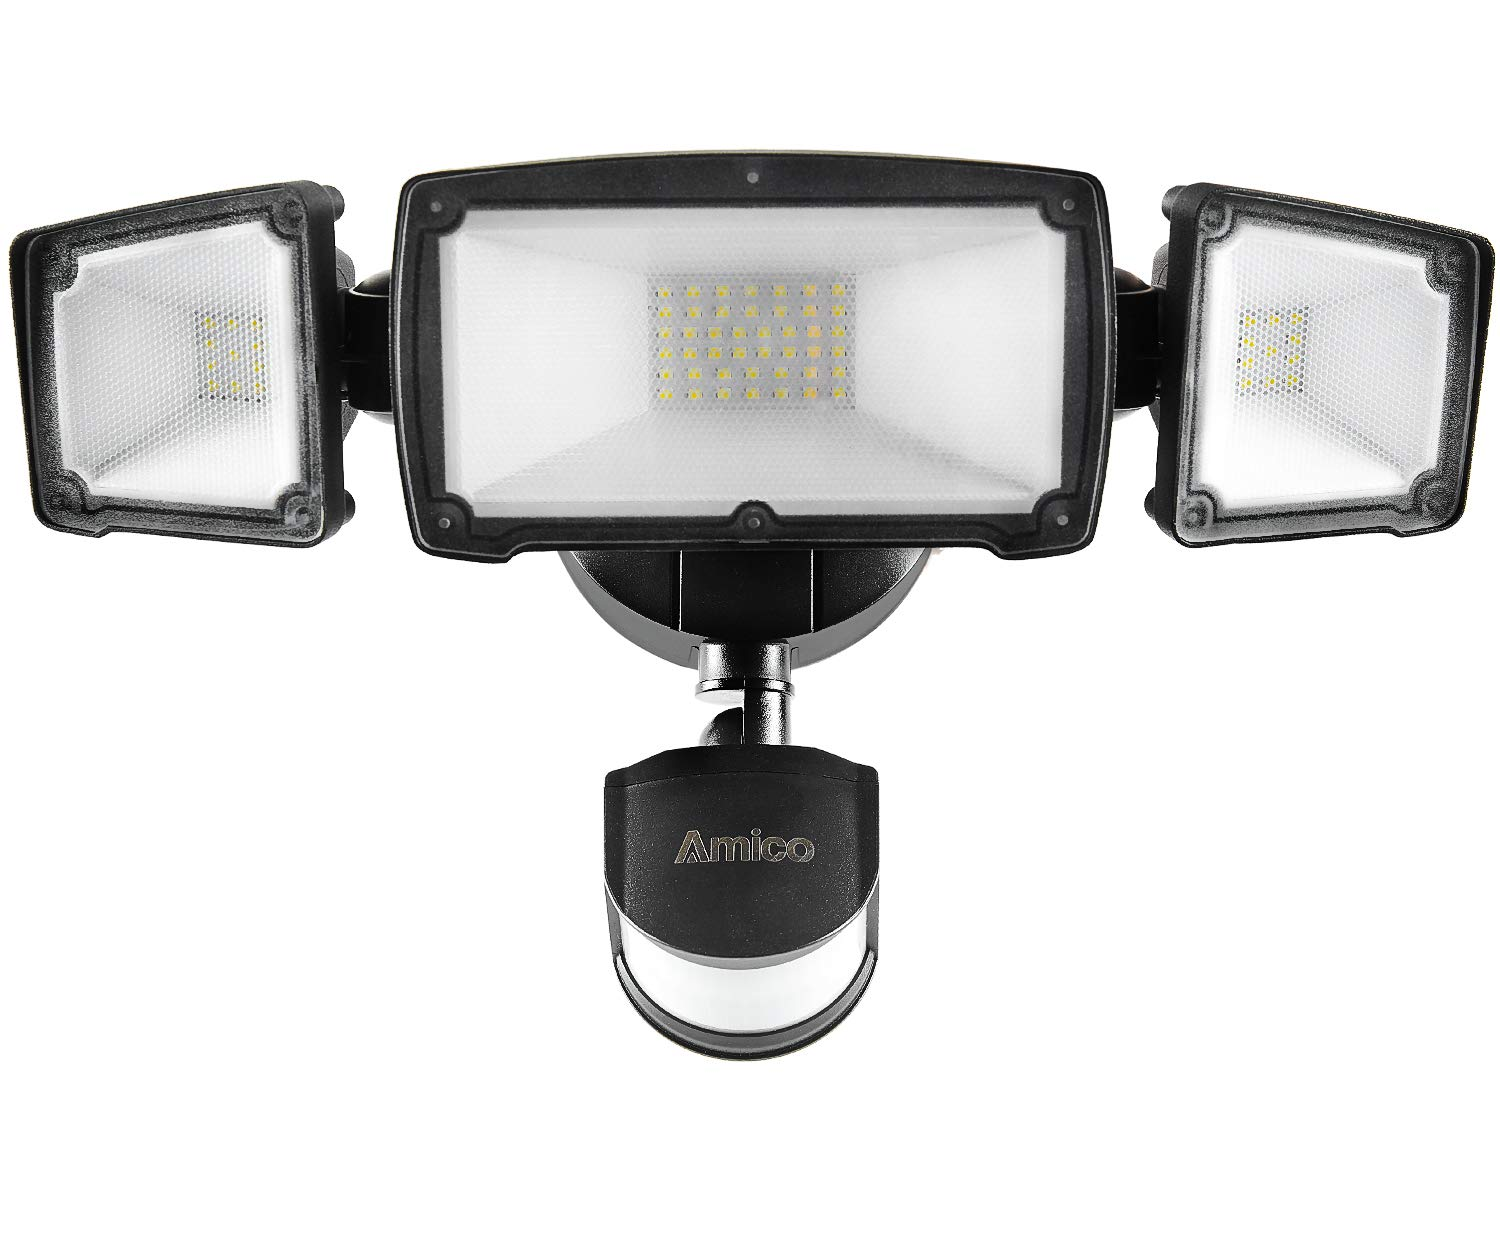 Amico 39W 3-Head LED Security Lights Motion Outdoor, Motion Sensor Light Outdoor, 3500 Lumens, 6000K, Waterproof, IP65 & ETL, Outdoor Motion Activited Flood Light (Black)  by Amico